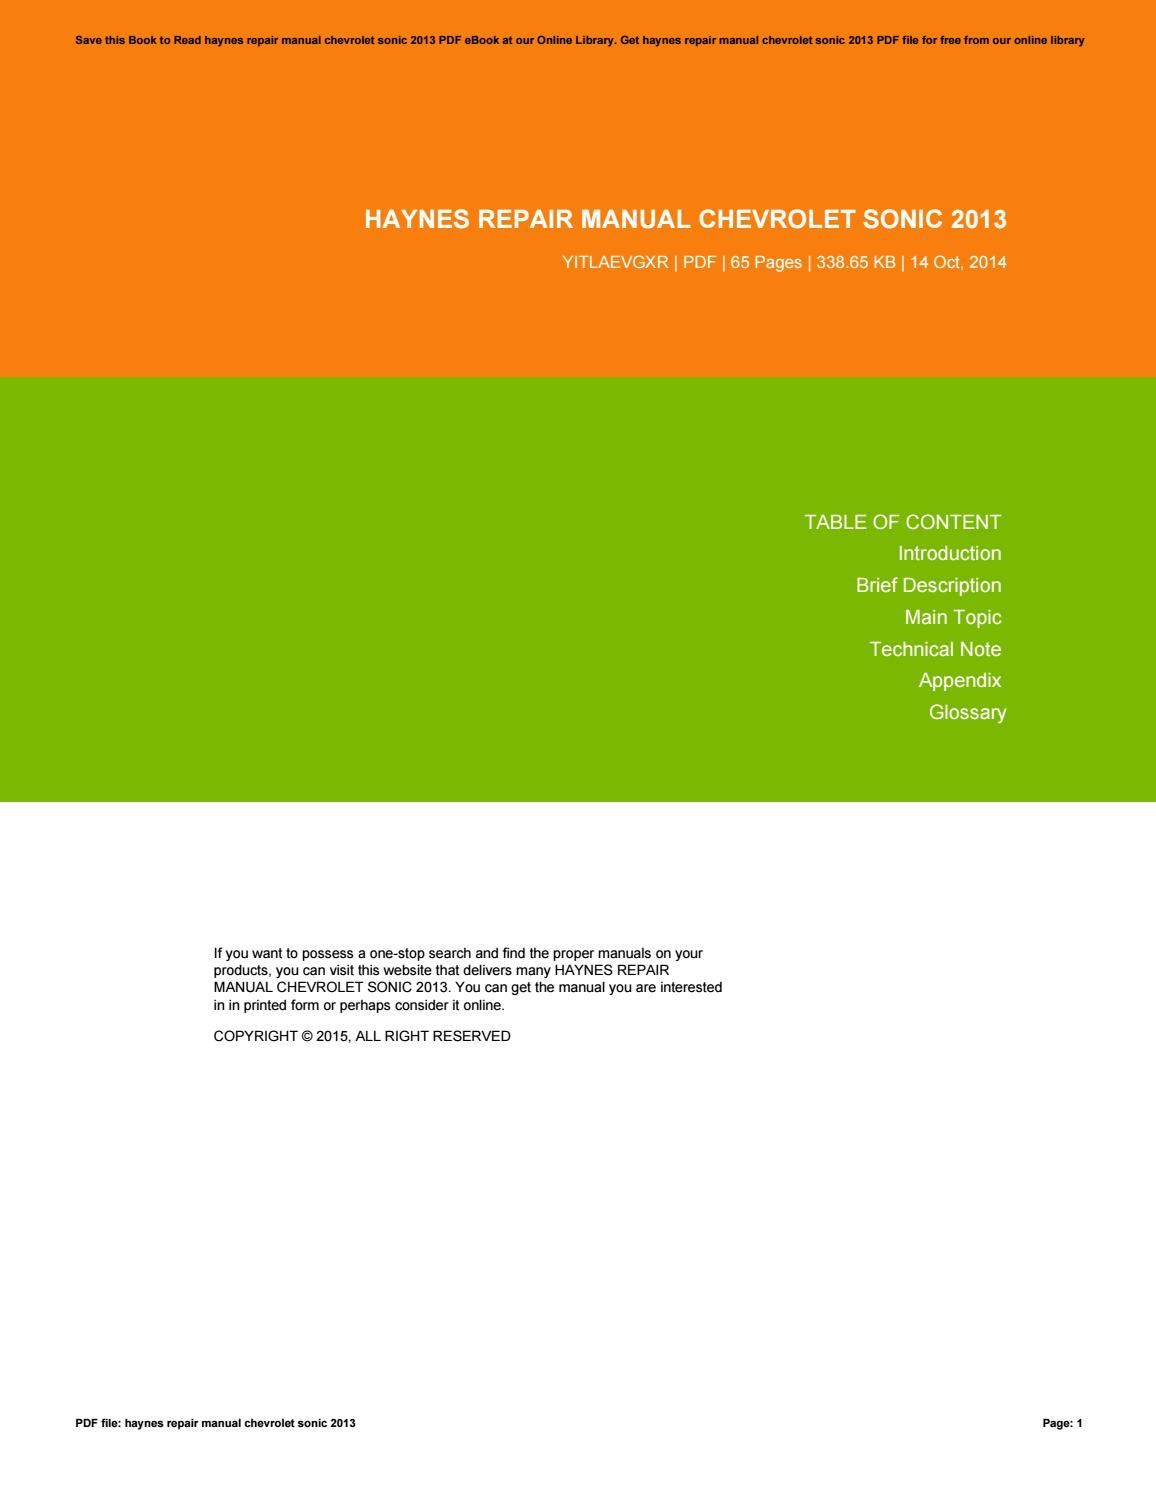 haynes repair manual chevrolet sonic 2013 by angelabrown2952 issuu rh issuu com Auto Repair Manuals Online Haynes Repair Manuals Mazda